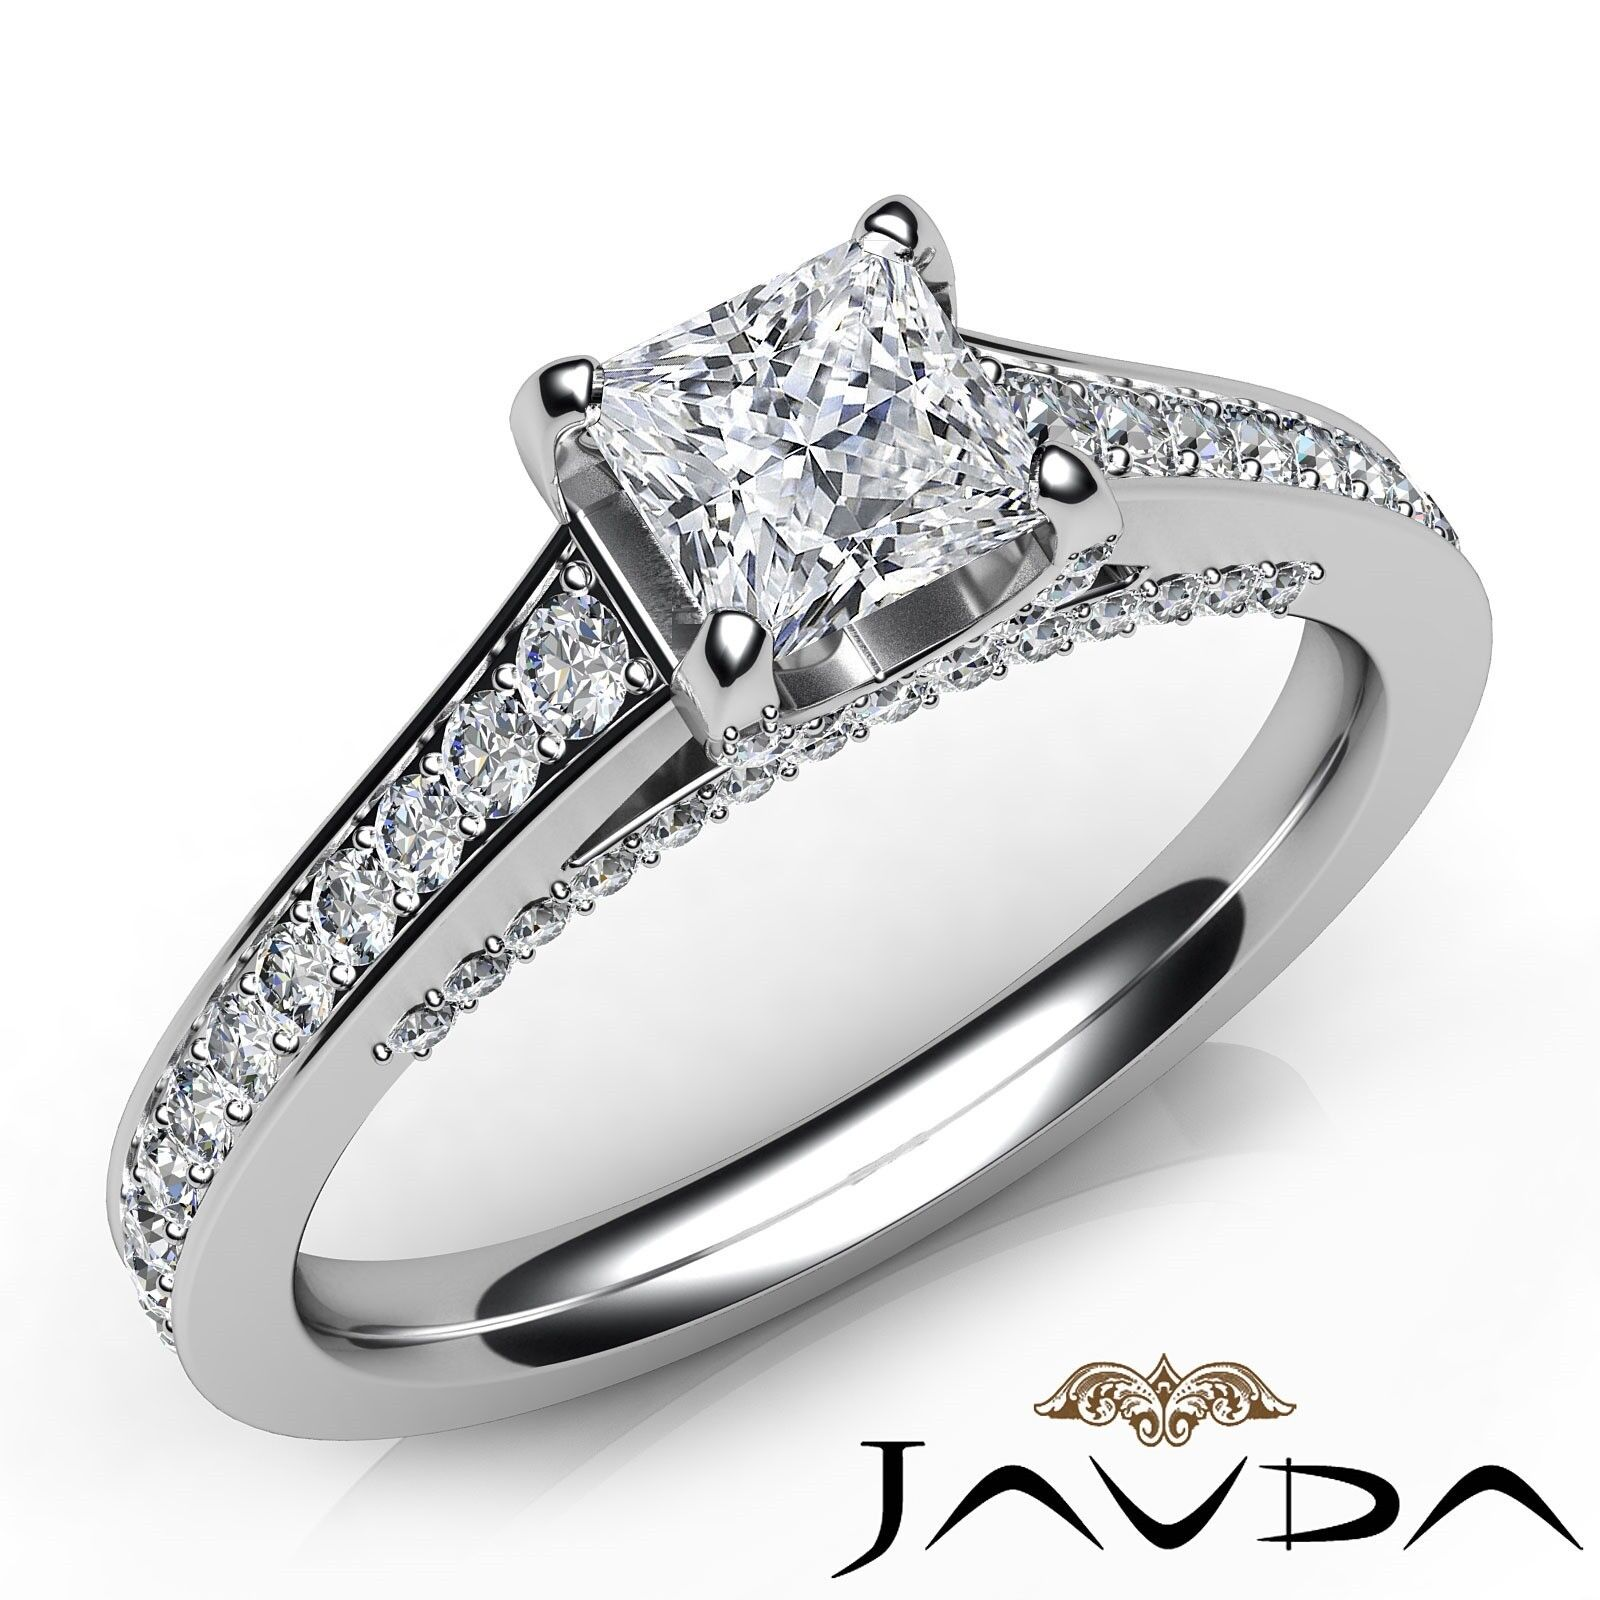 1.46ctw Tapered Pave Princess Diamond Engagement Ring GIA G-VS2 White Gold Rings